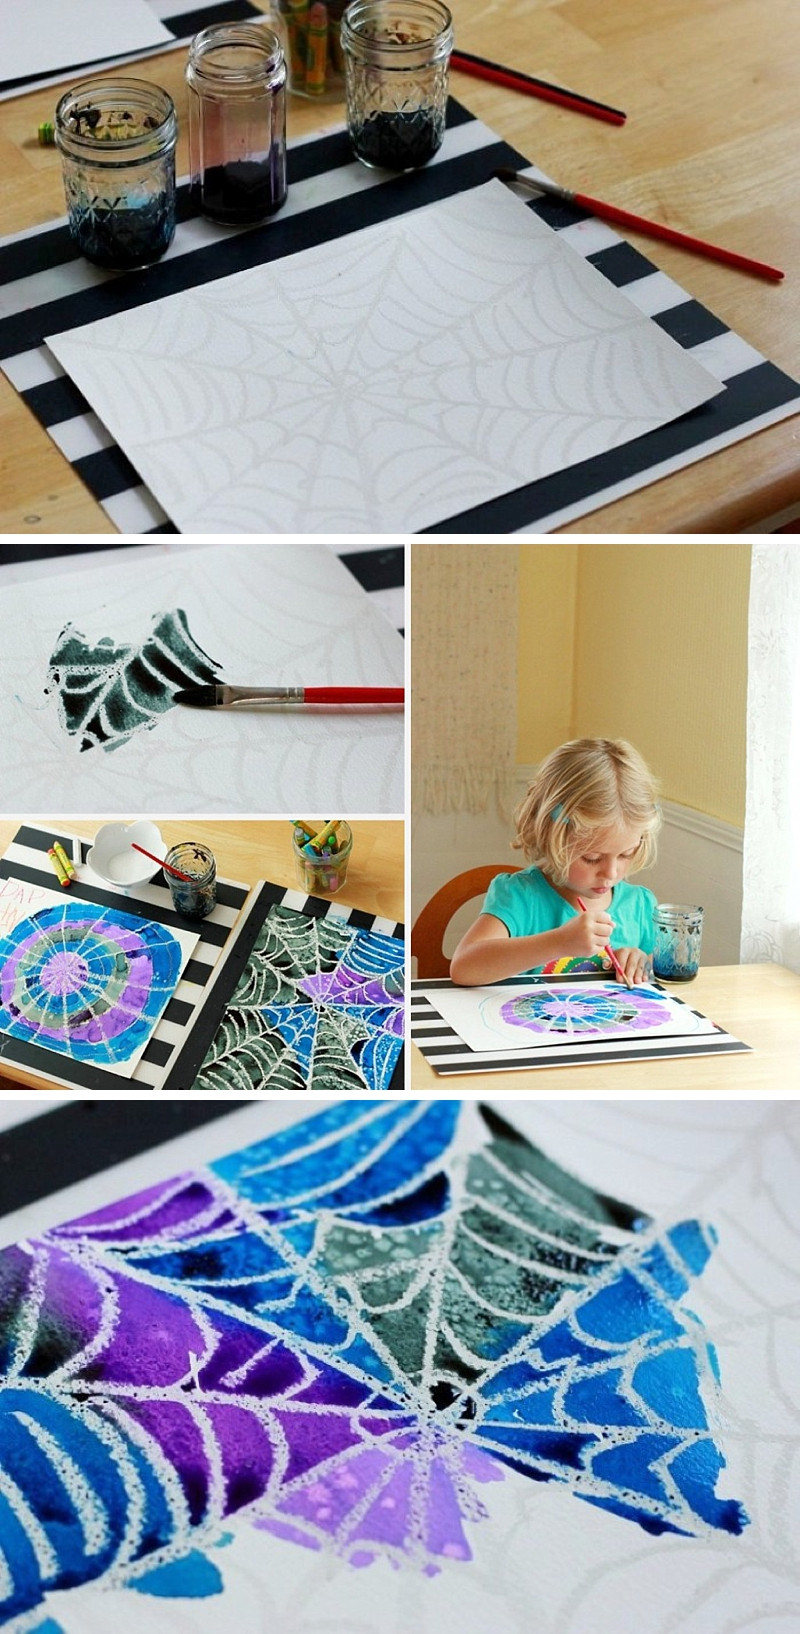 Best ideas about Art Projects For Little Kids . Save or Pin Spider Web Art Project A Simple and Beautiful Now.